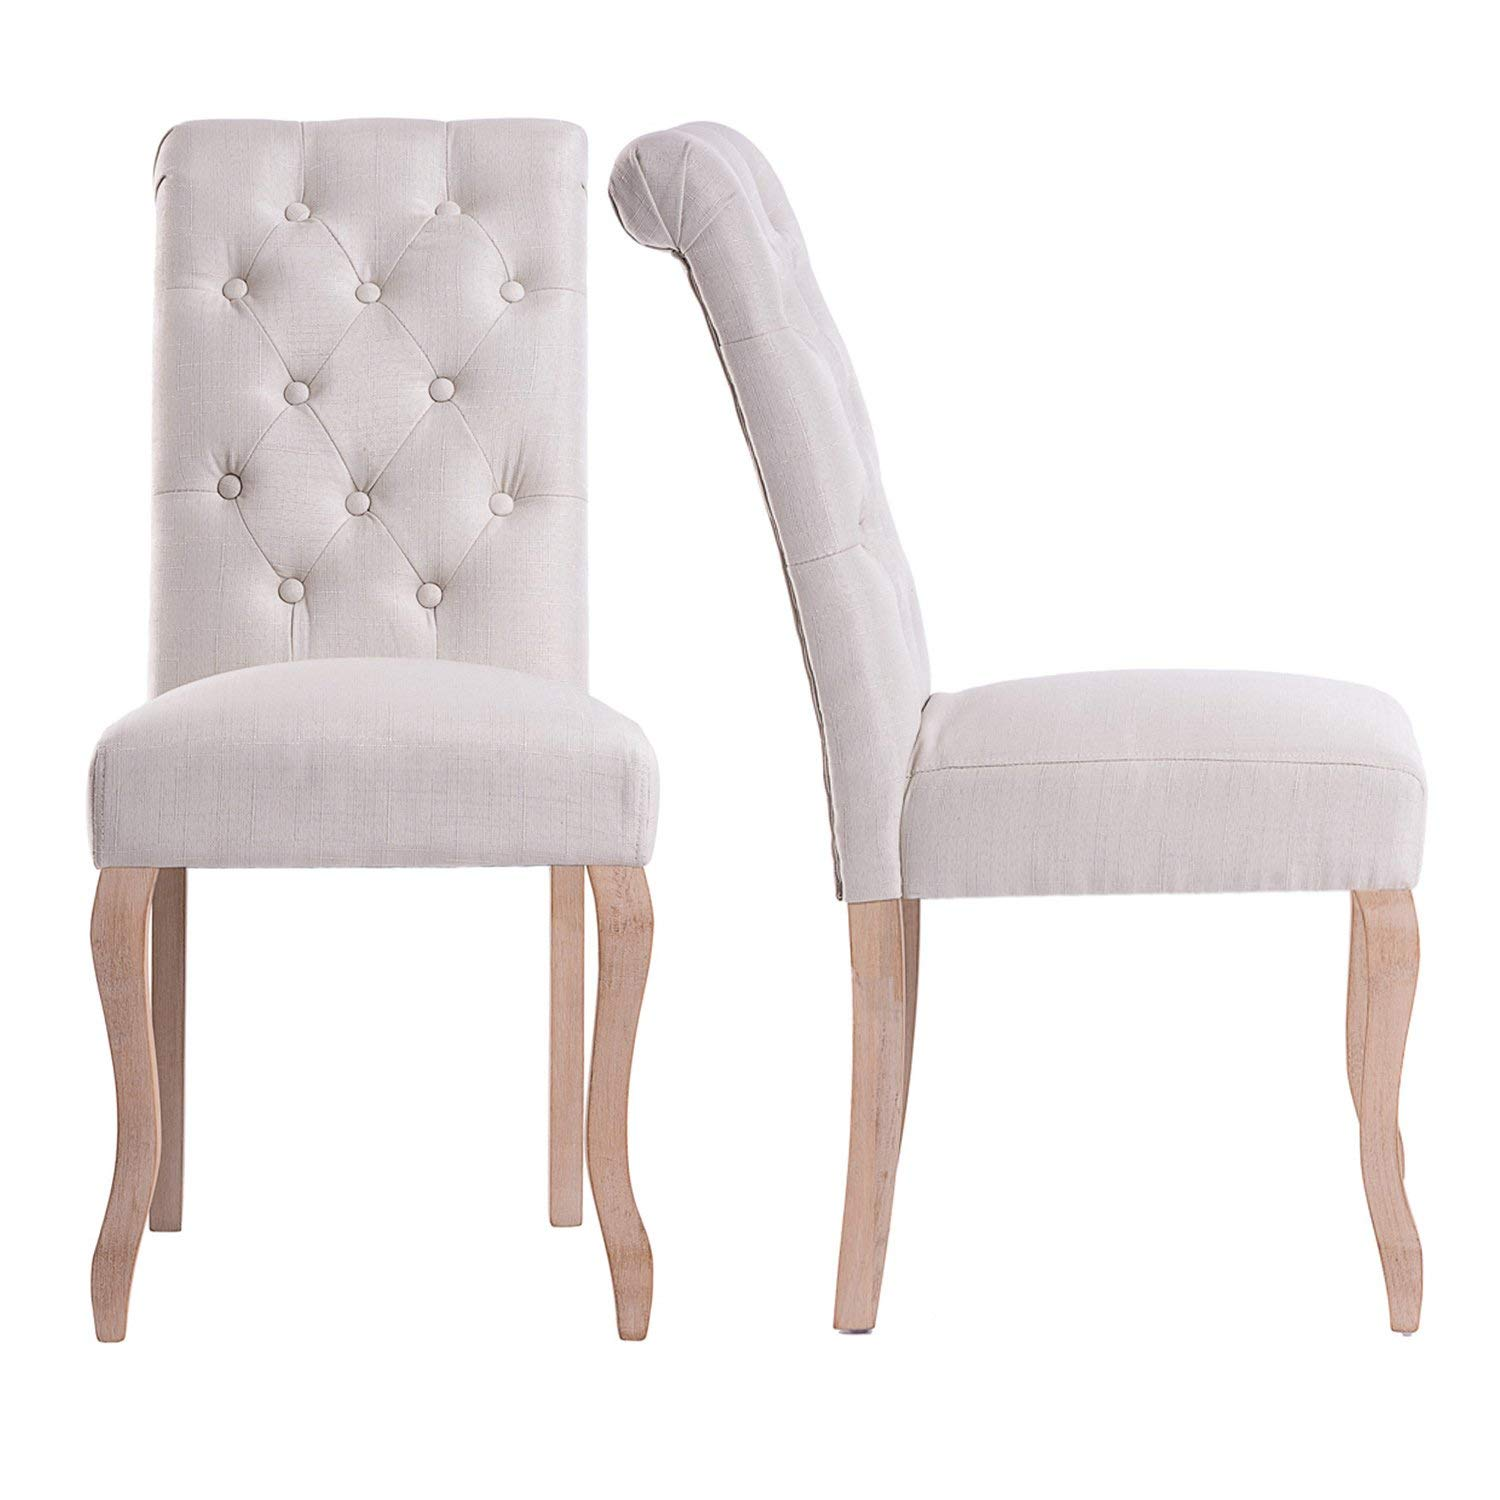 Harper&Bright Designs 2-Piece Button Tufted Upholstered Dining Chairs Set, Multiple Colors